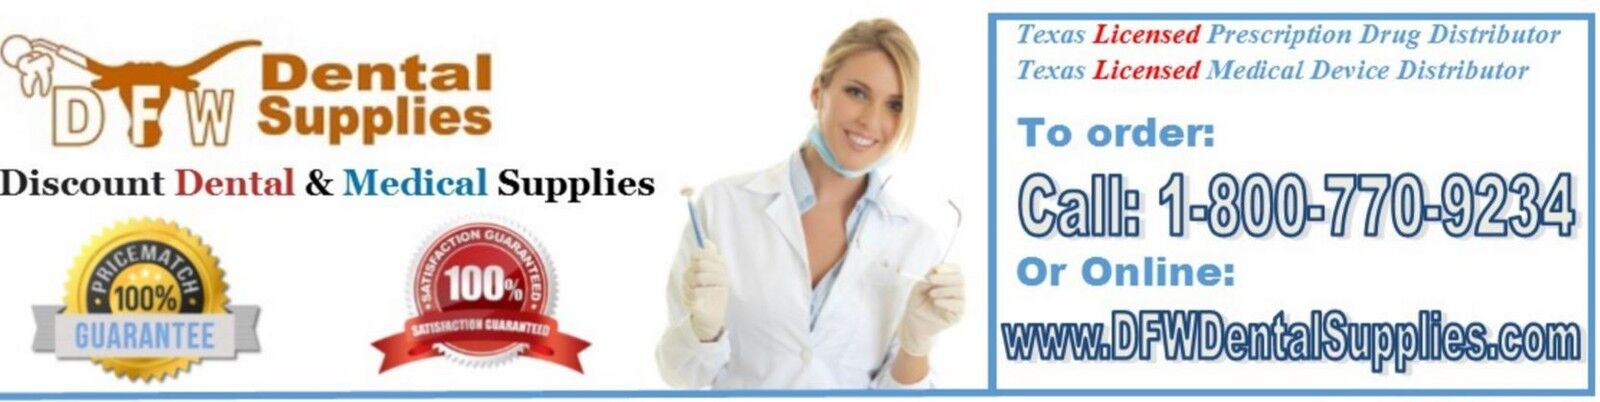 DFW Dental Supplies